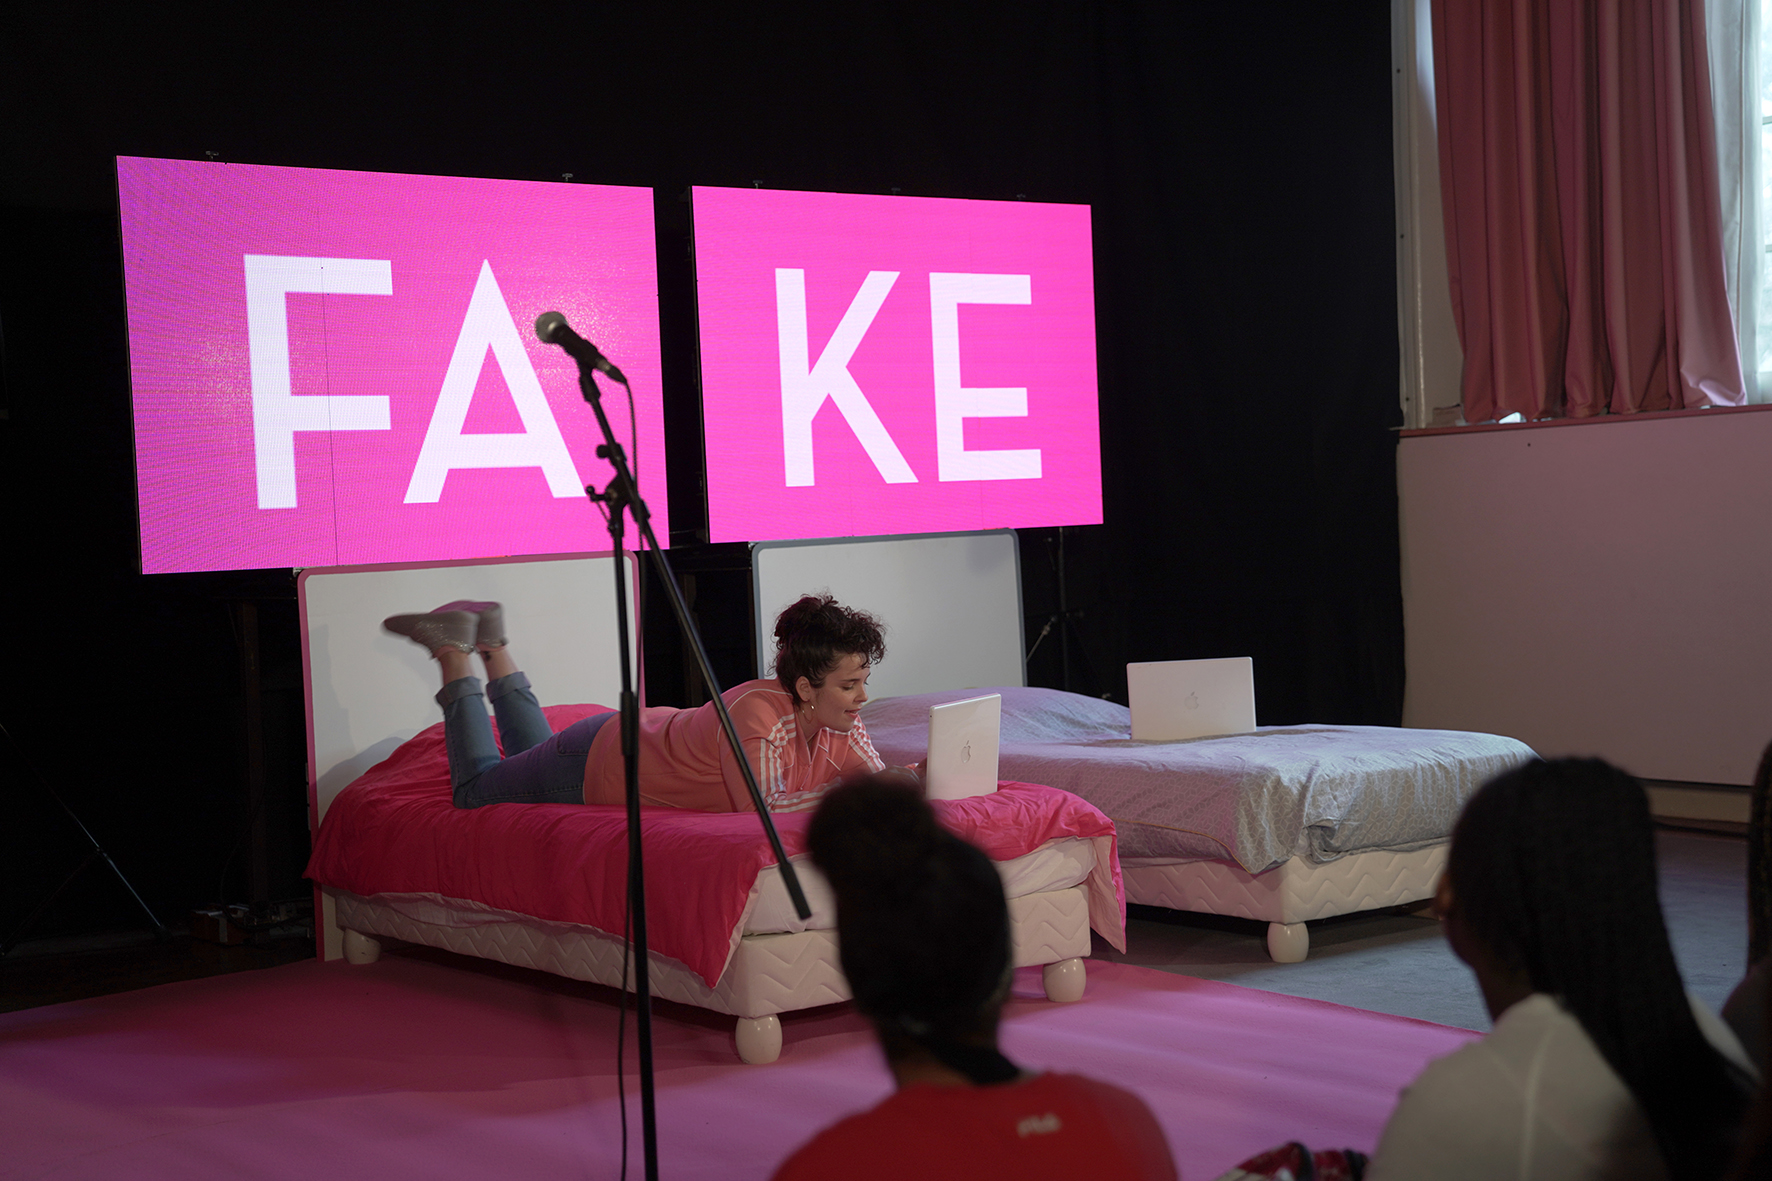 Fake de Claudine Galea